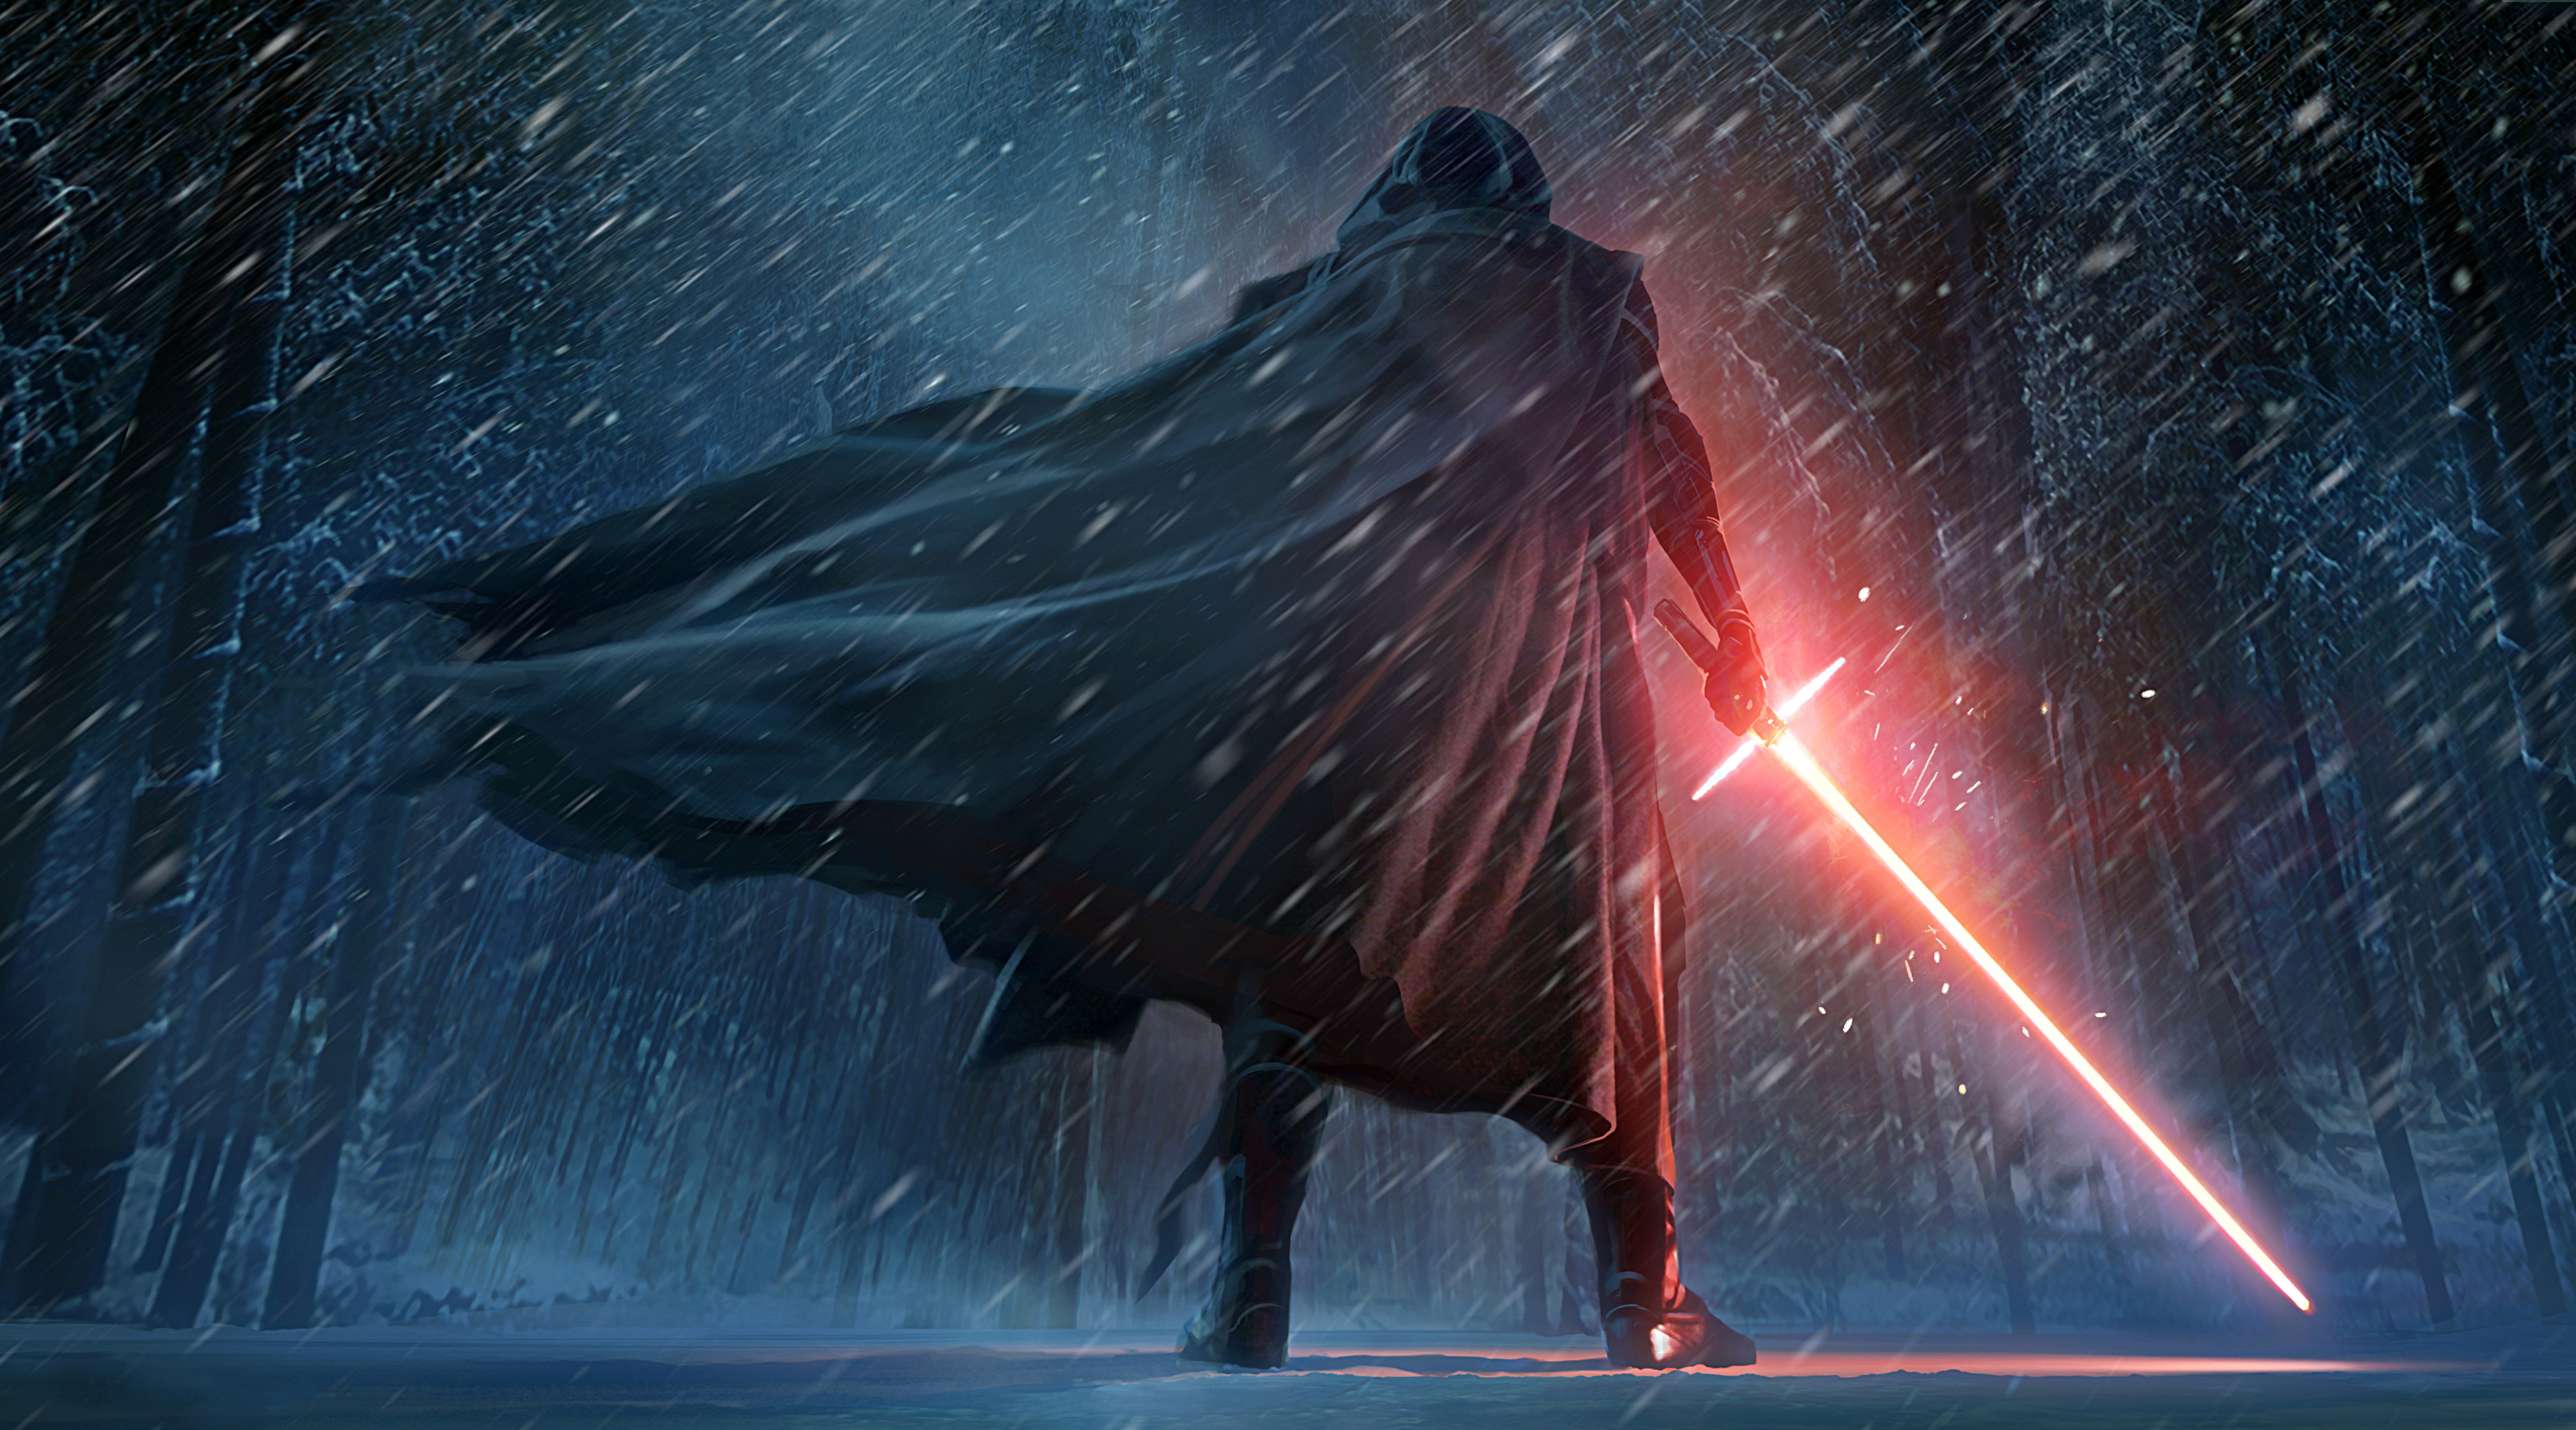 2527 Star Wars HD Wallpapers | Backgrounds - Wallpaper Abyss